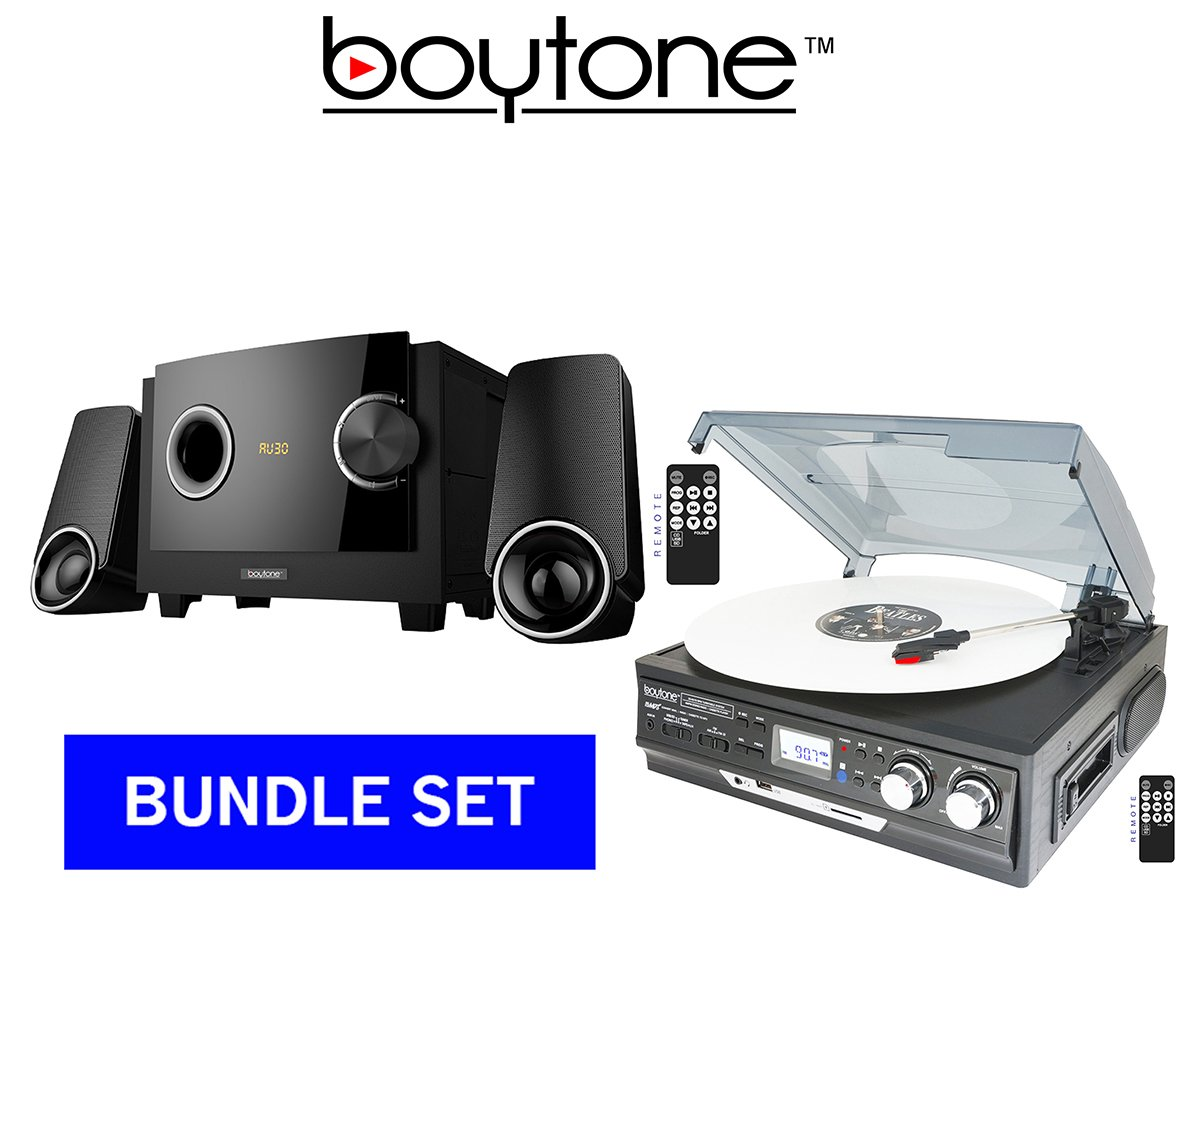 BOYTONE PREMUIM SOUND SYSTEM BUNDLE SET, Turntable Plus 2.1 multimedia Bluetooth speaker (BT-17DJB-C & BT-3129F) by Boytone